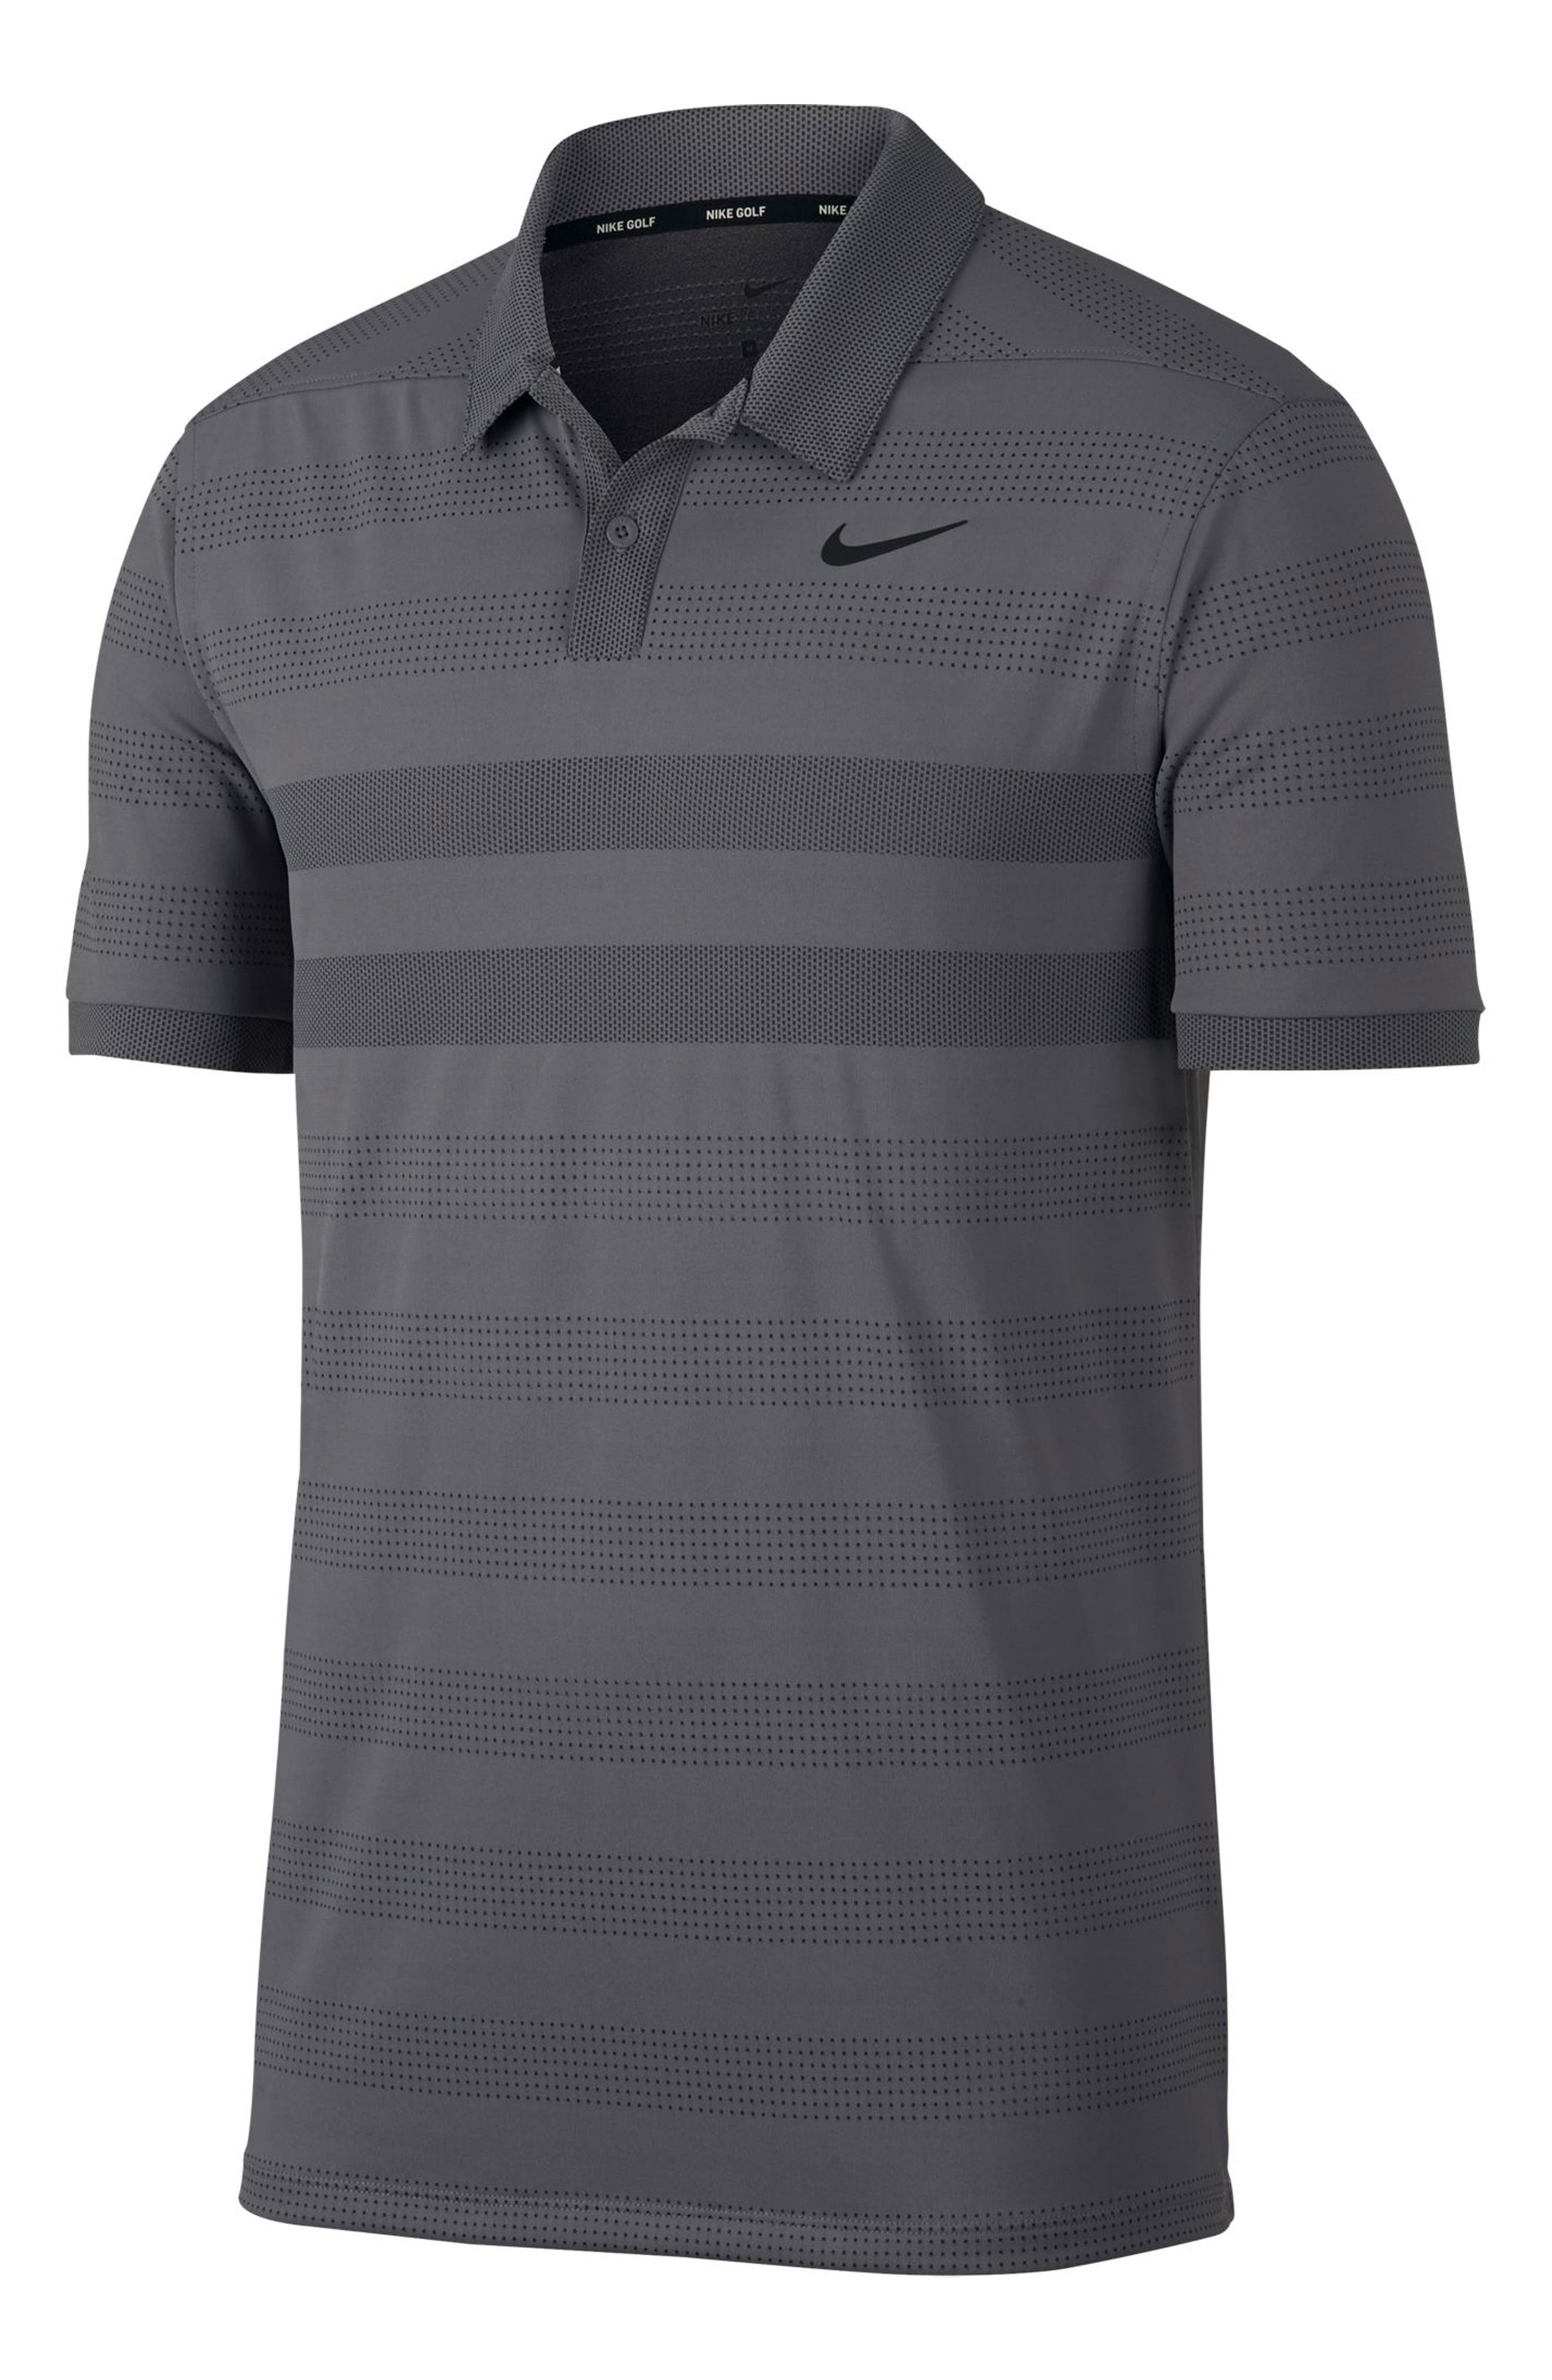 Mens Nike Polo Shirts Nordstrom